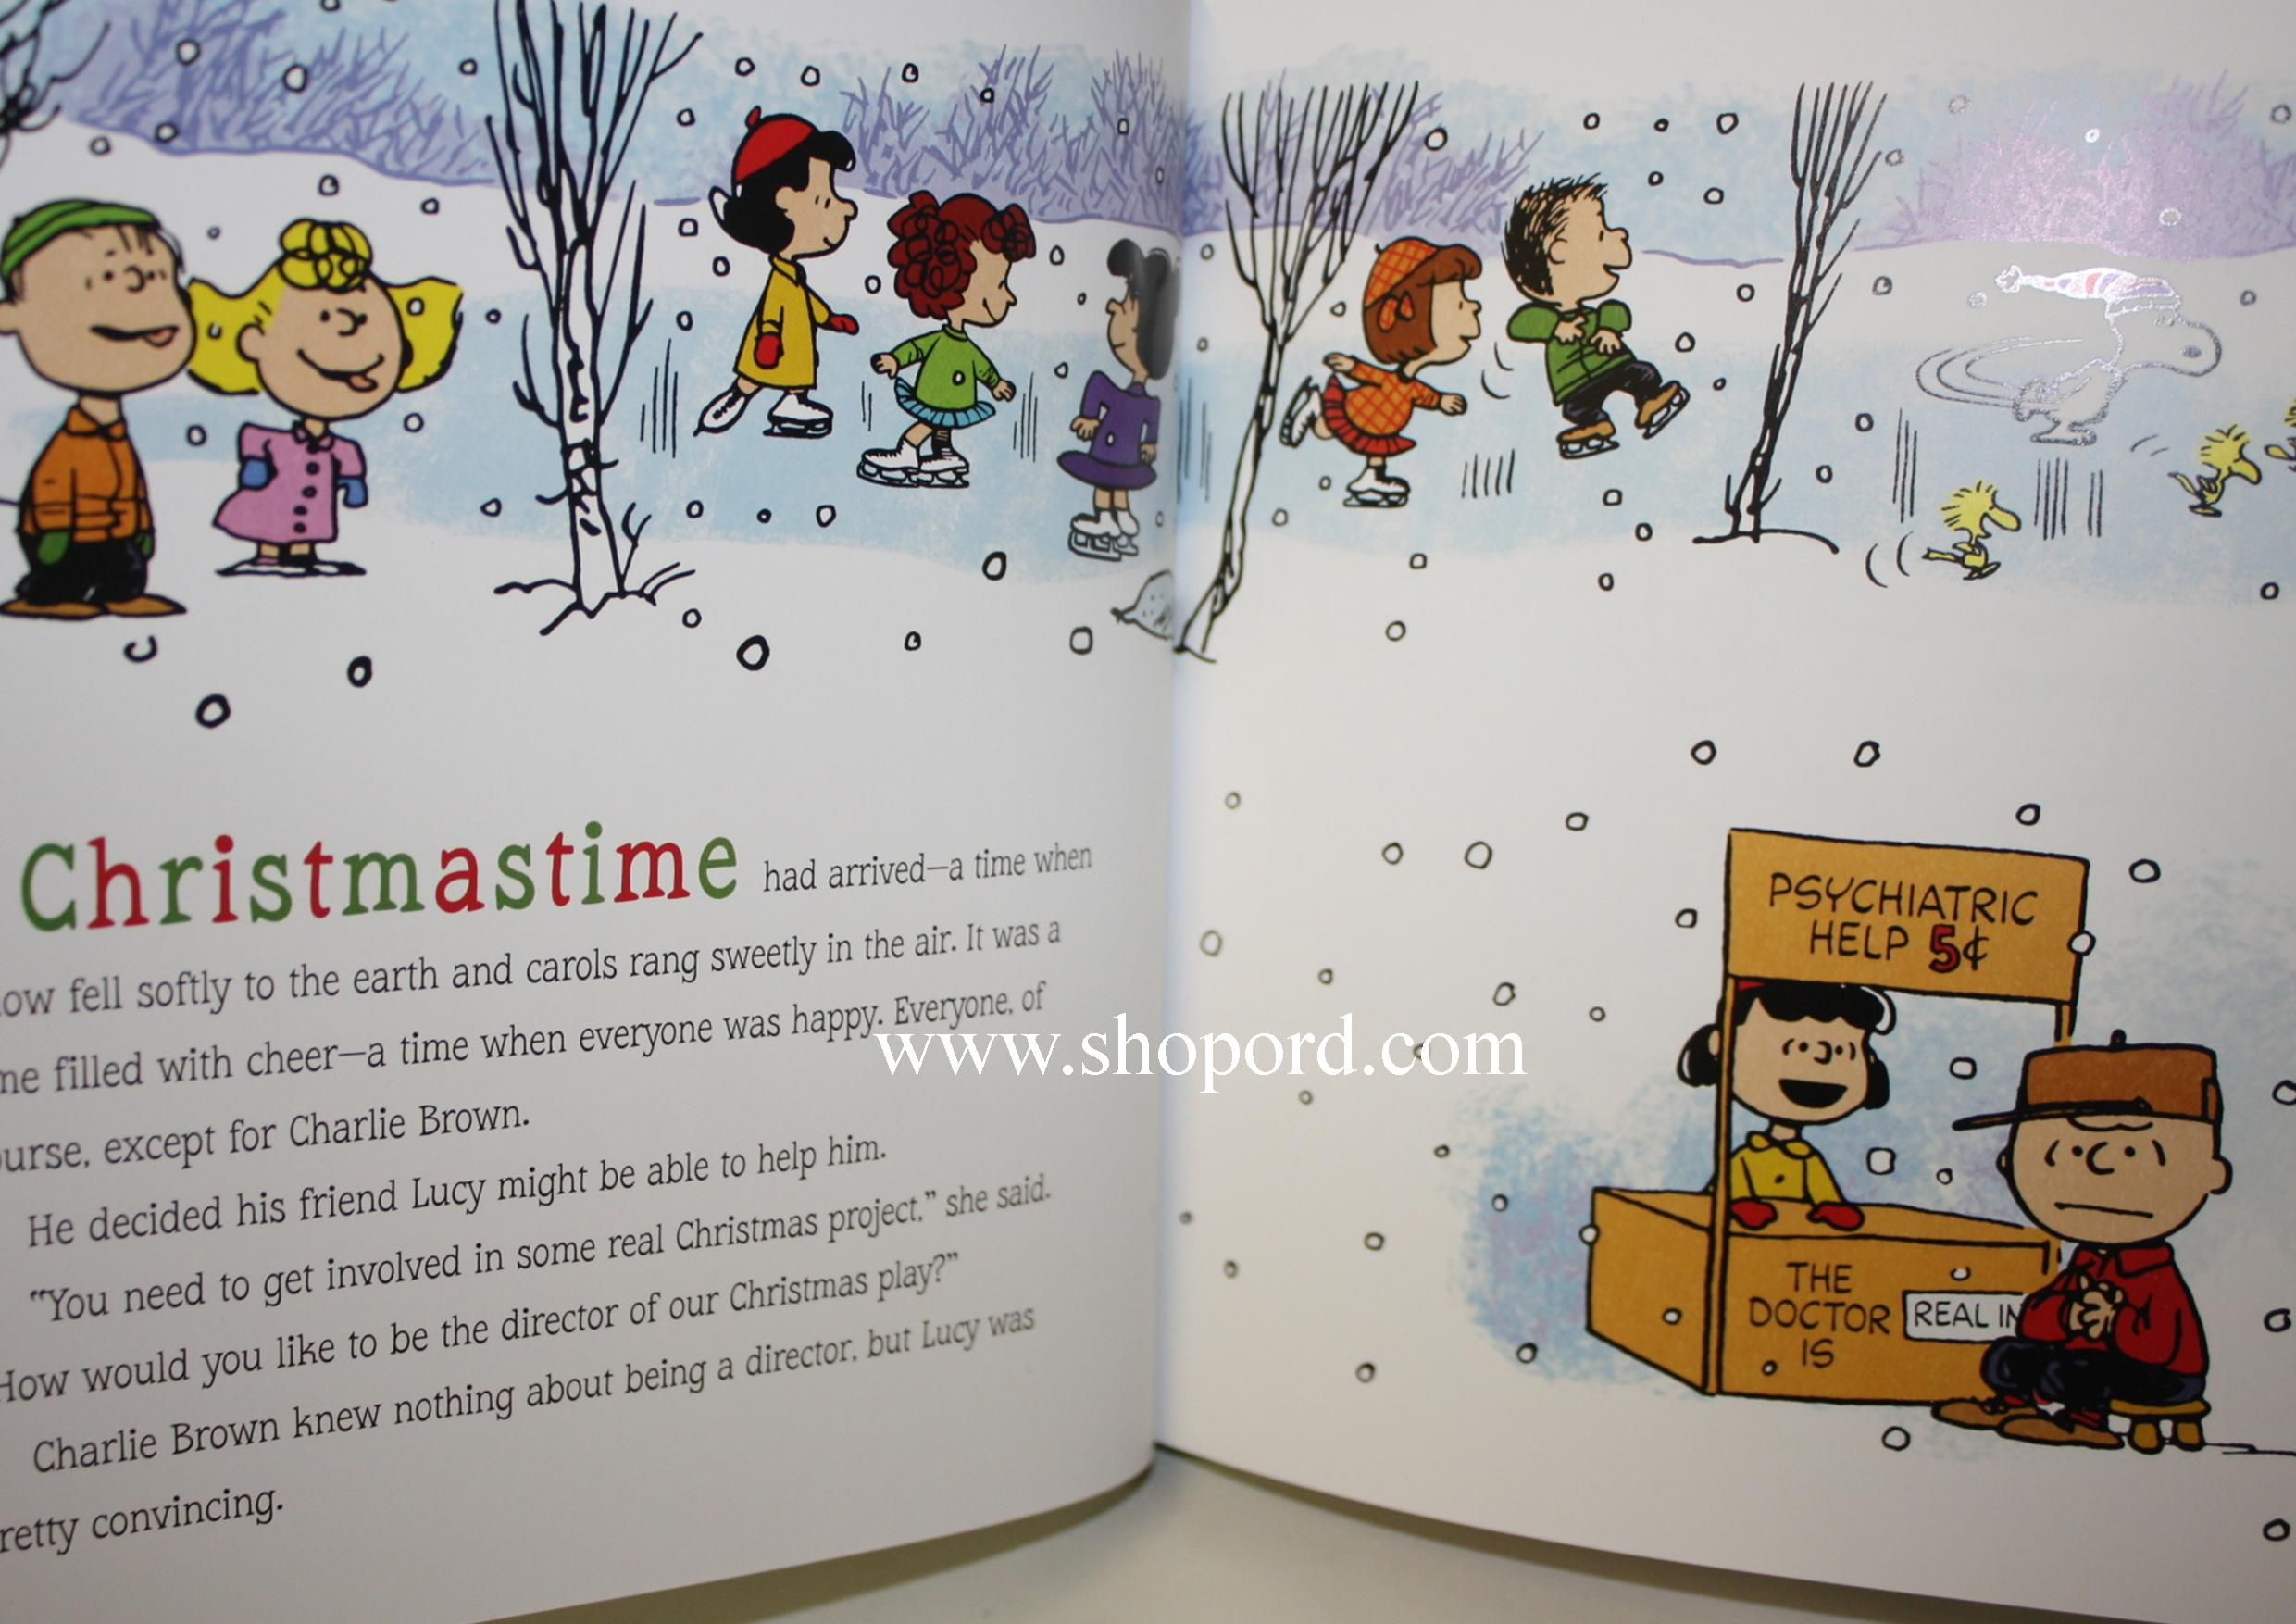 A Charlie Brown Christmas Book.Hallmark Peanuts A Charlie Brown Christmas Hardcover Book 50